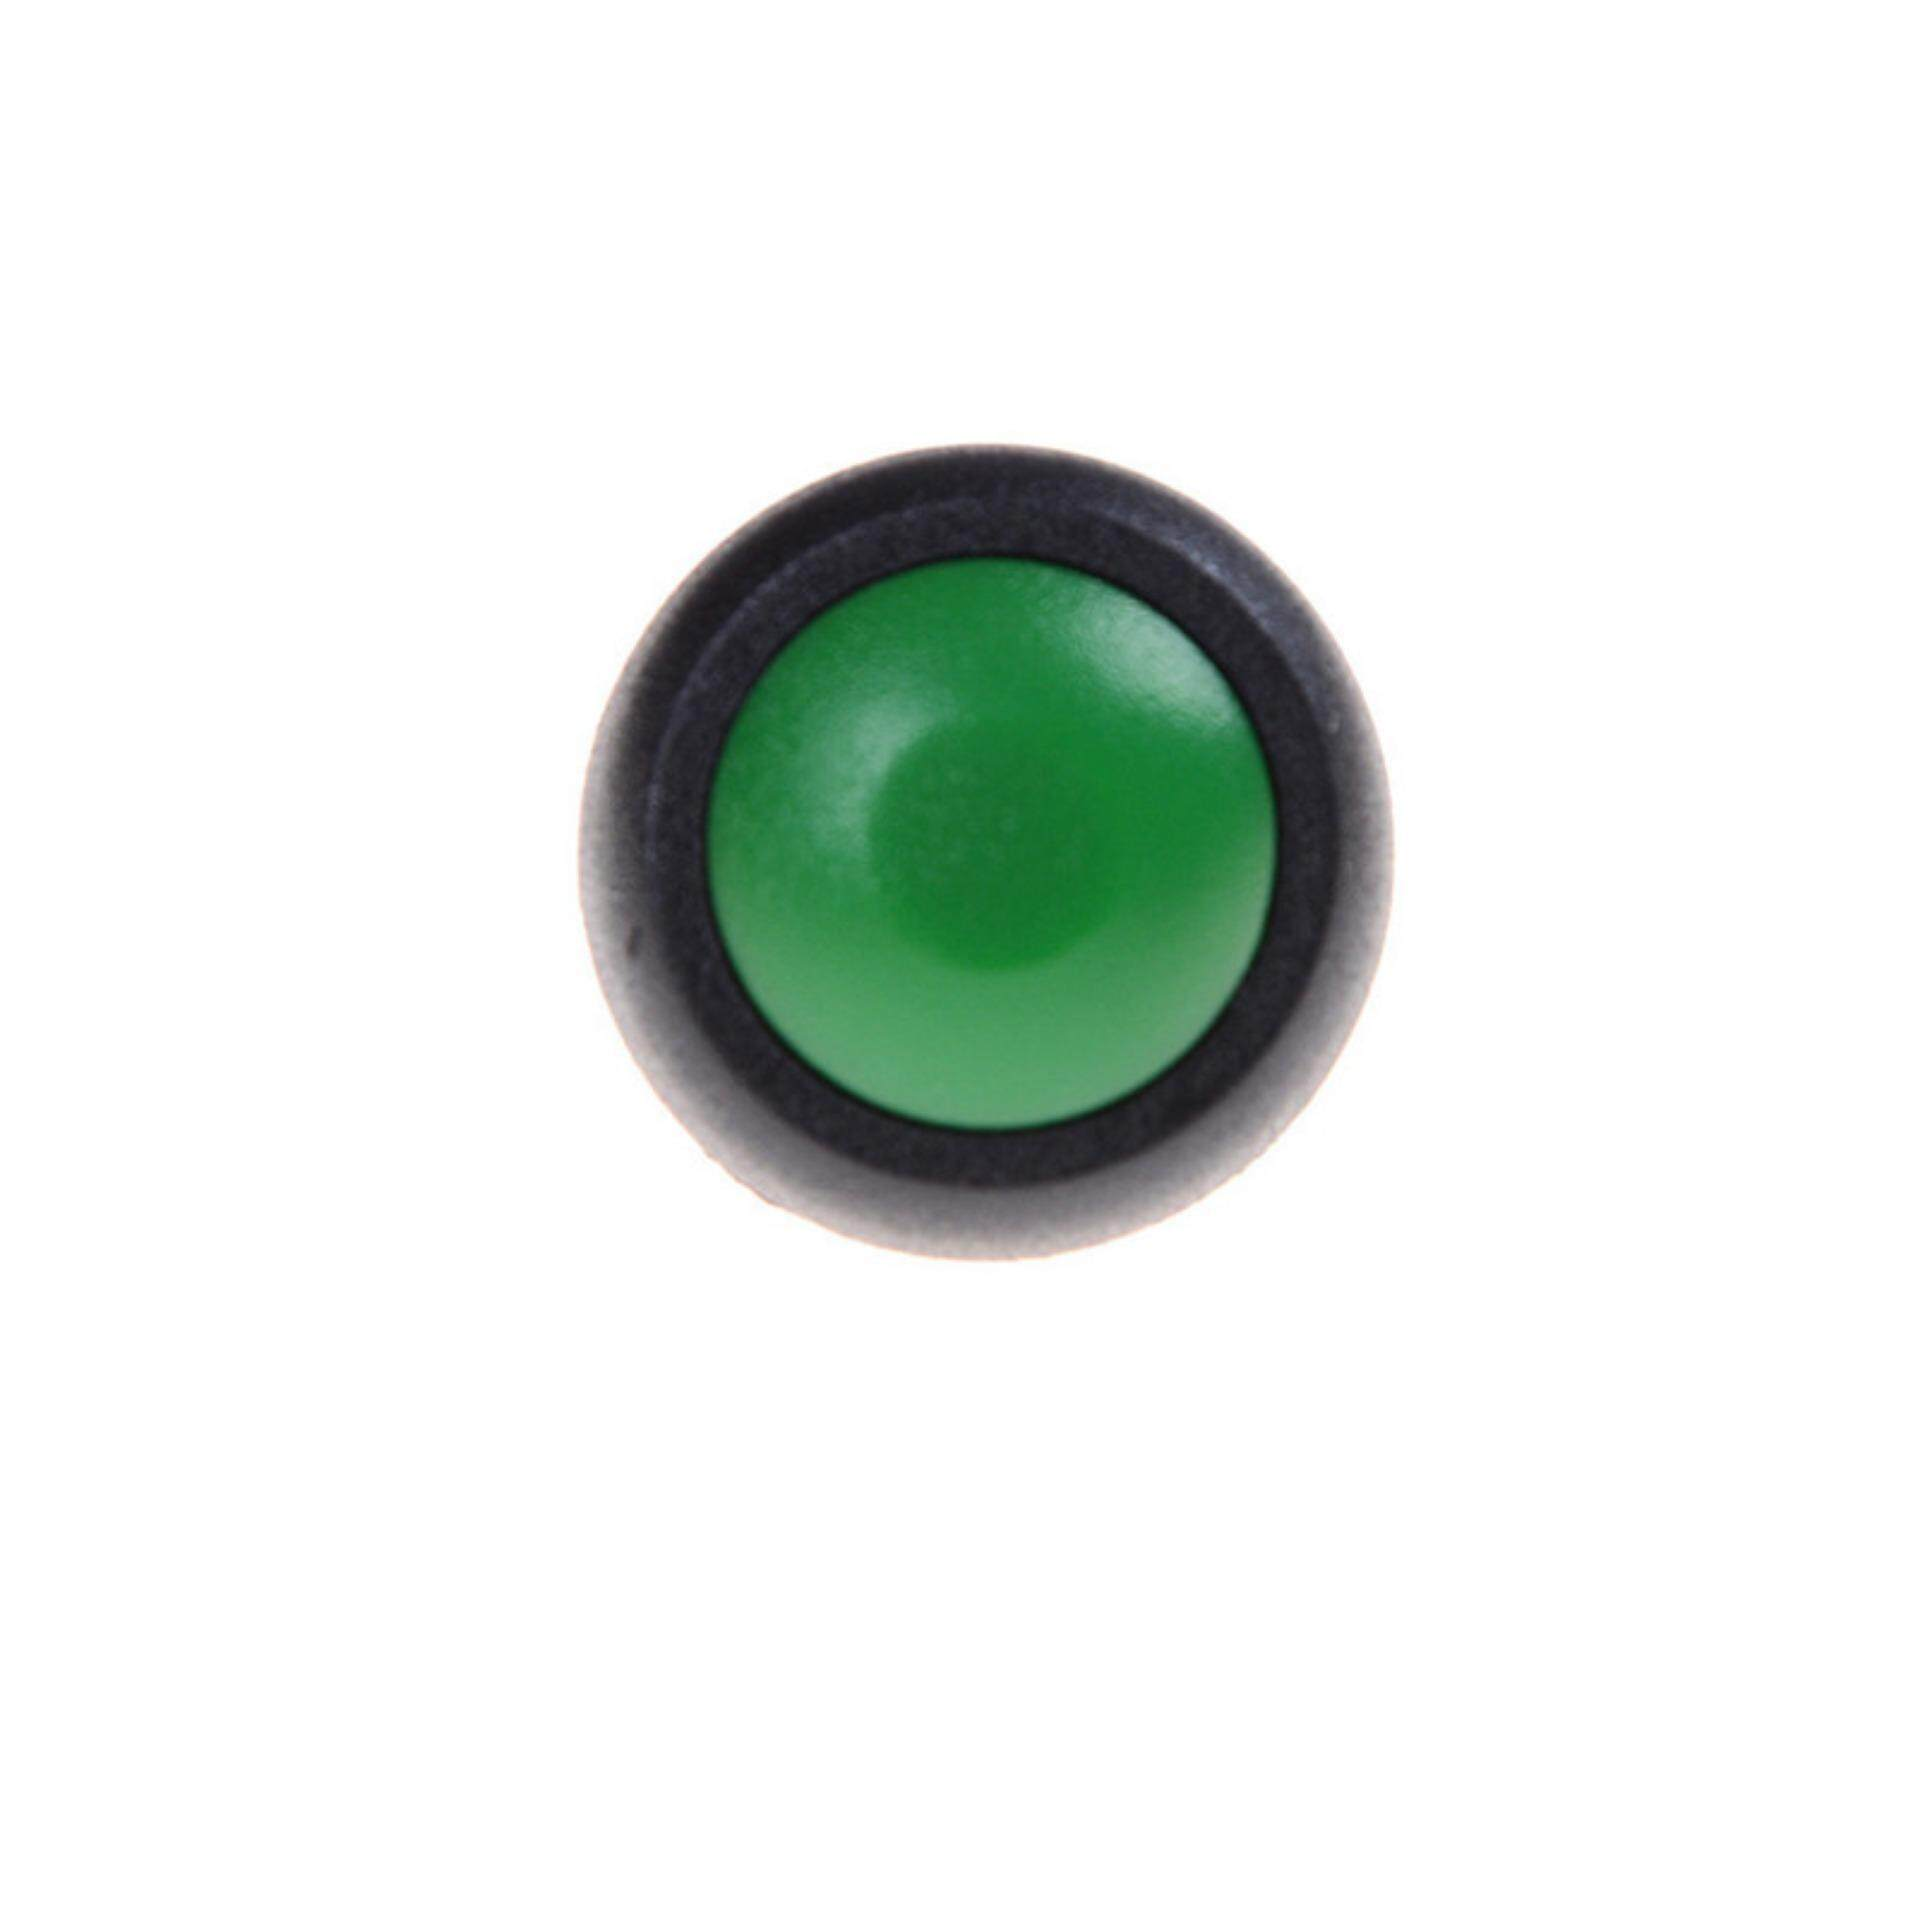 Features 12v Dc Led Light Illuminated Green Round Momentary Push Rocker Switch Spst X2 With Red Indicator Lamps 12mm Waterproof On Off Button Mini